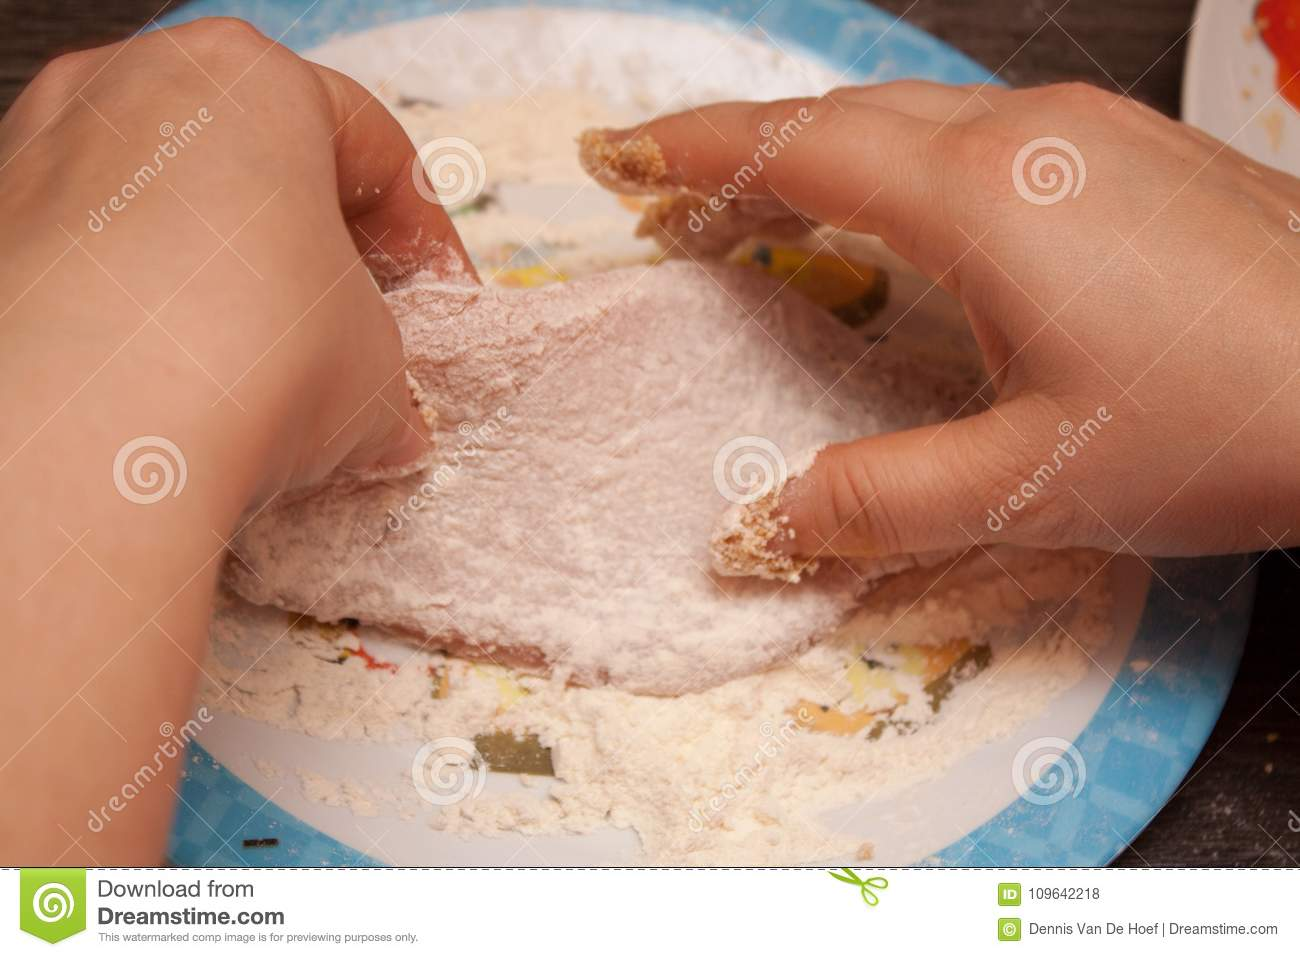 Two hands putting flour on meat to making a wiener schnitzel.